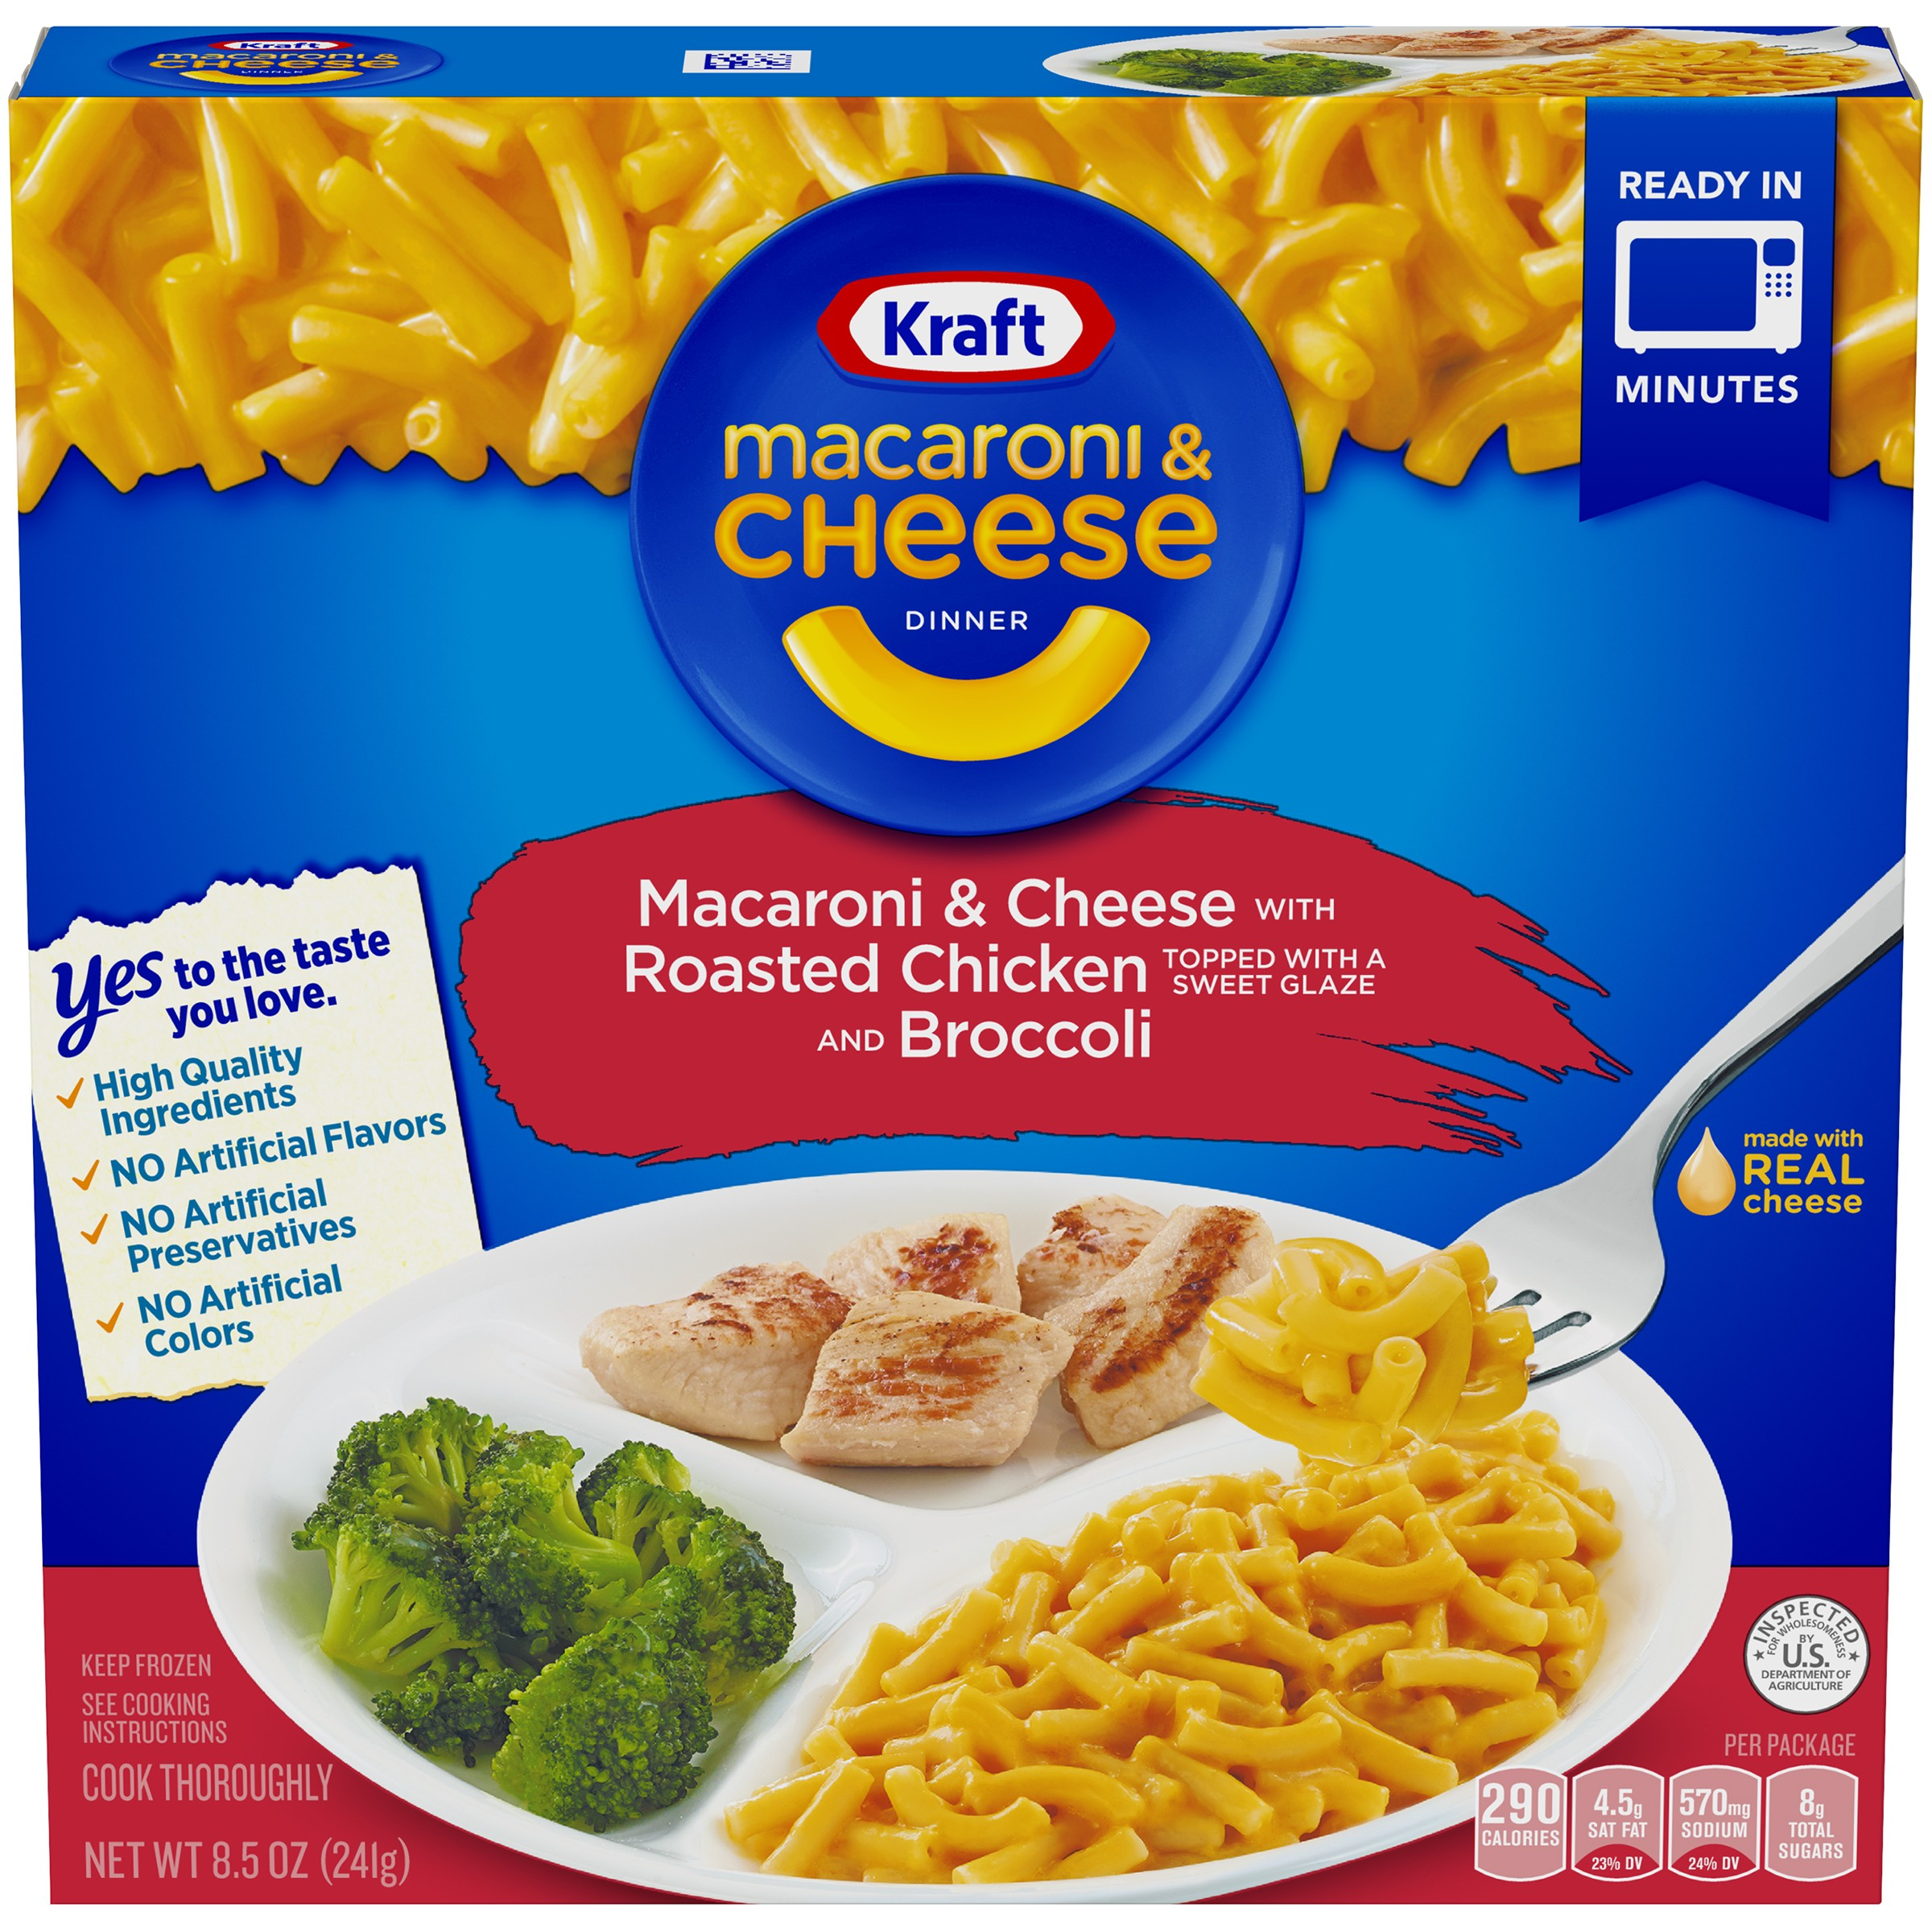 Kraft Macaroni & Cheese with Roasted Chicken and Broccoli Dinner 8.5 oz. Box